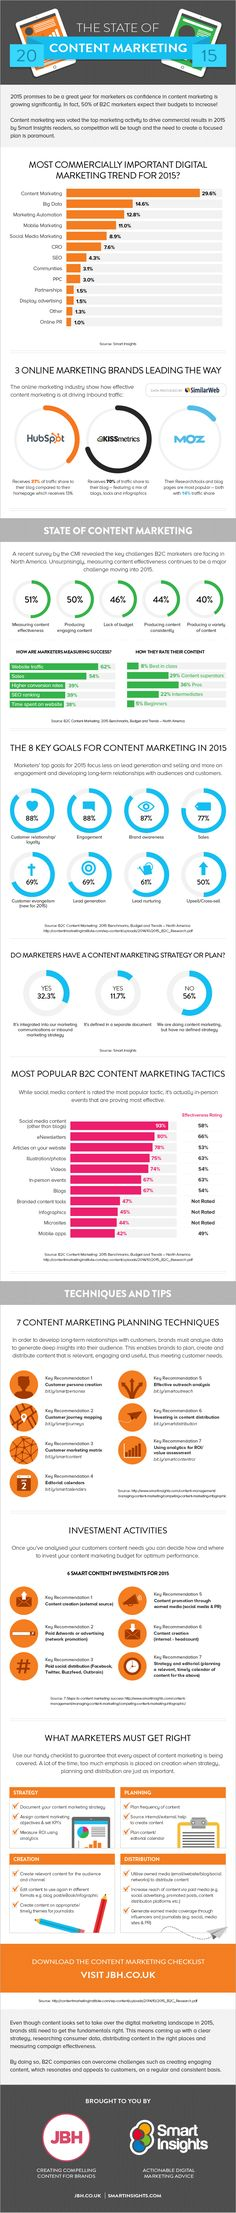 jbh.co.uk Infographic: The State of Content Marketing in 2015 February 2, 2015 | by Lauren Meir It's a phrase marketers have been hearing for the past 15 years or so, ad nauseam: Content is King.